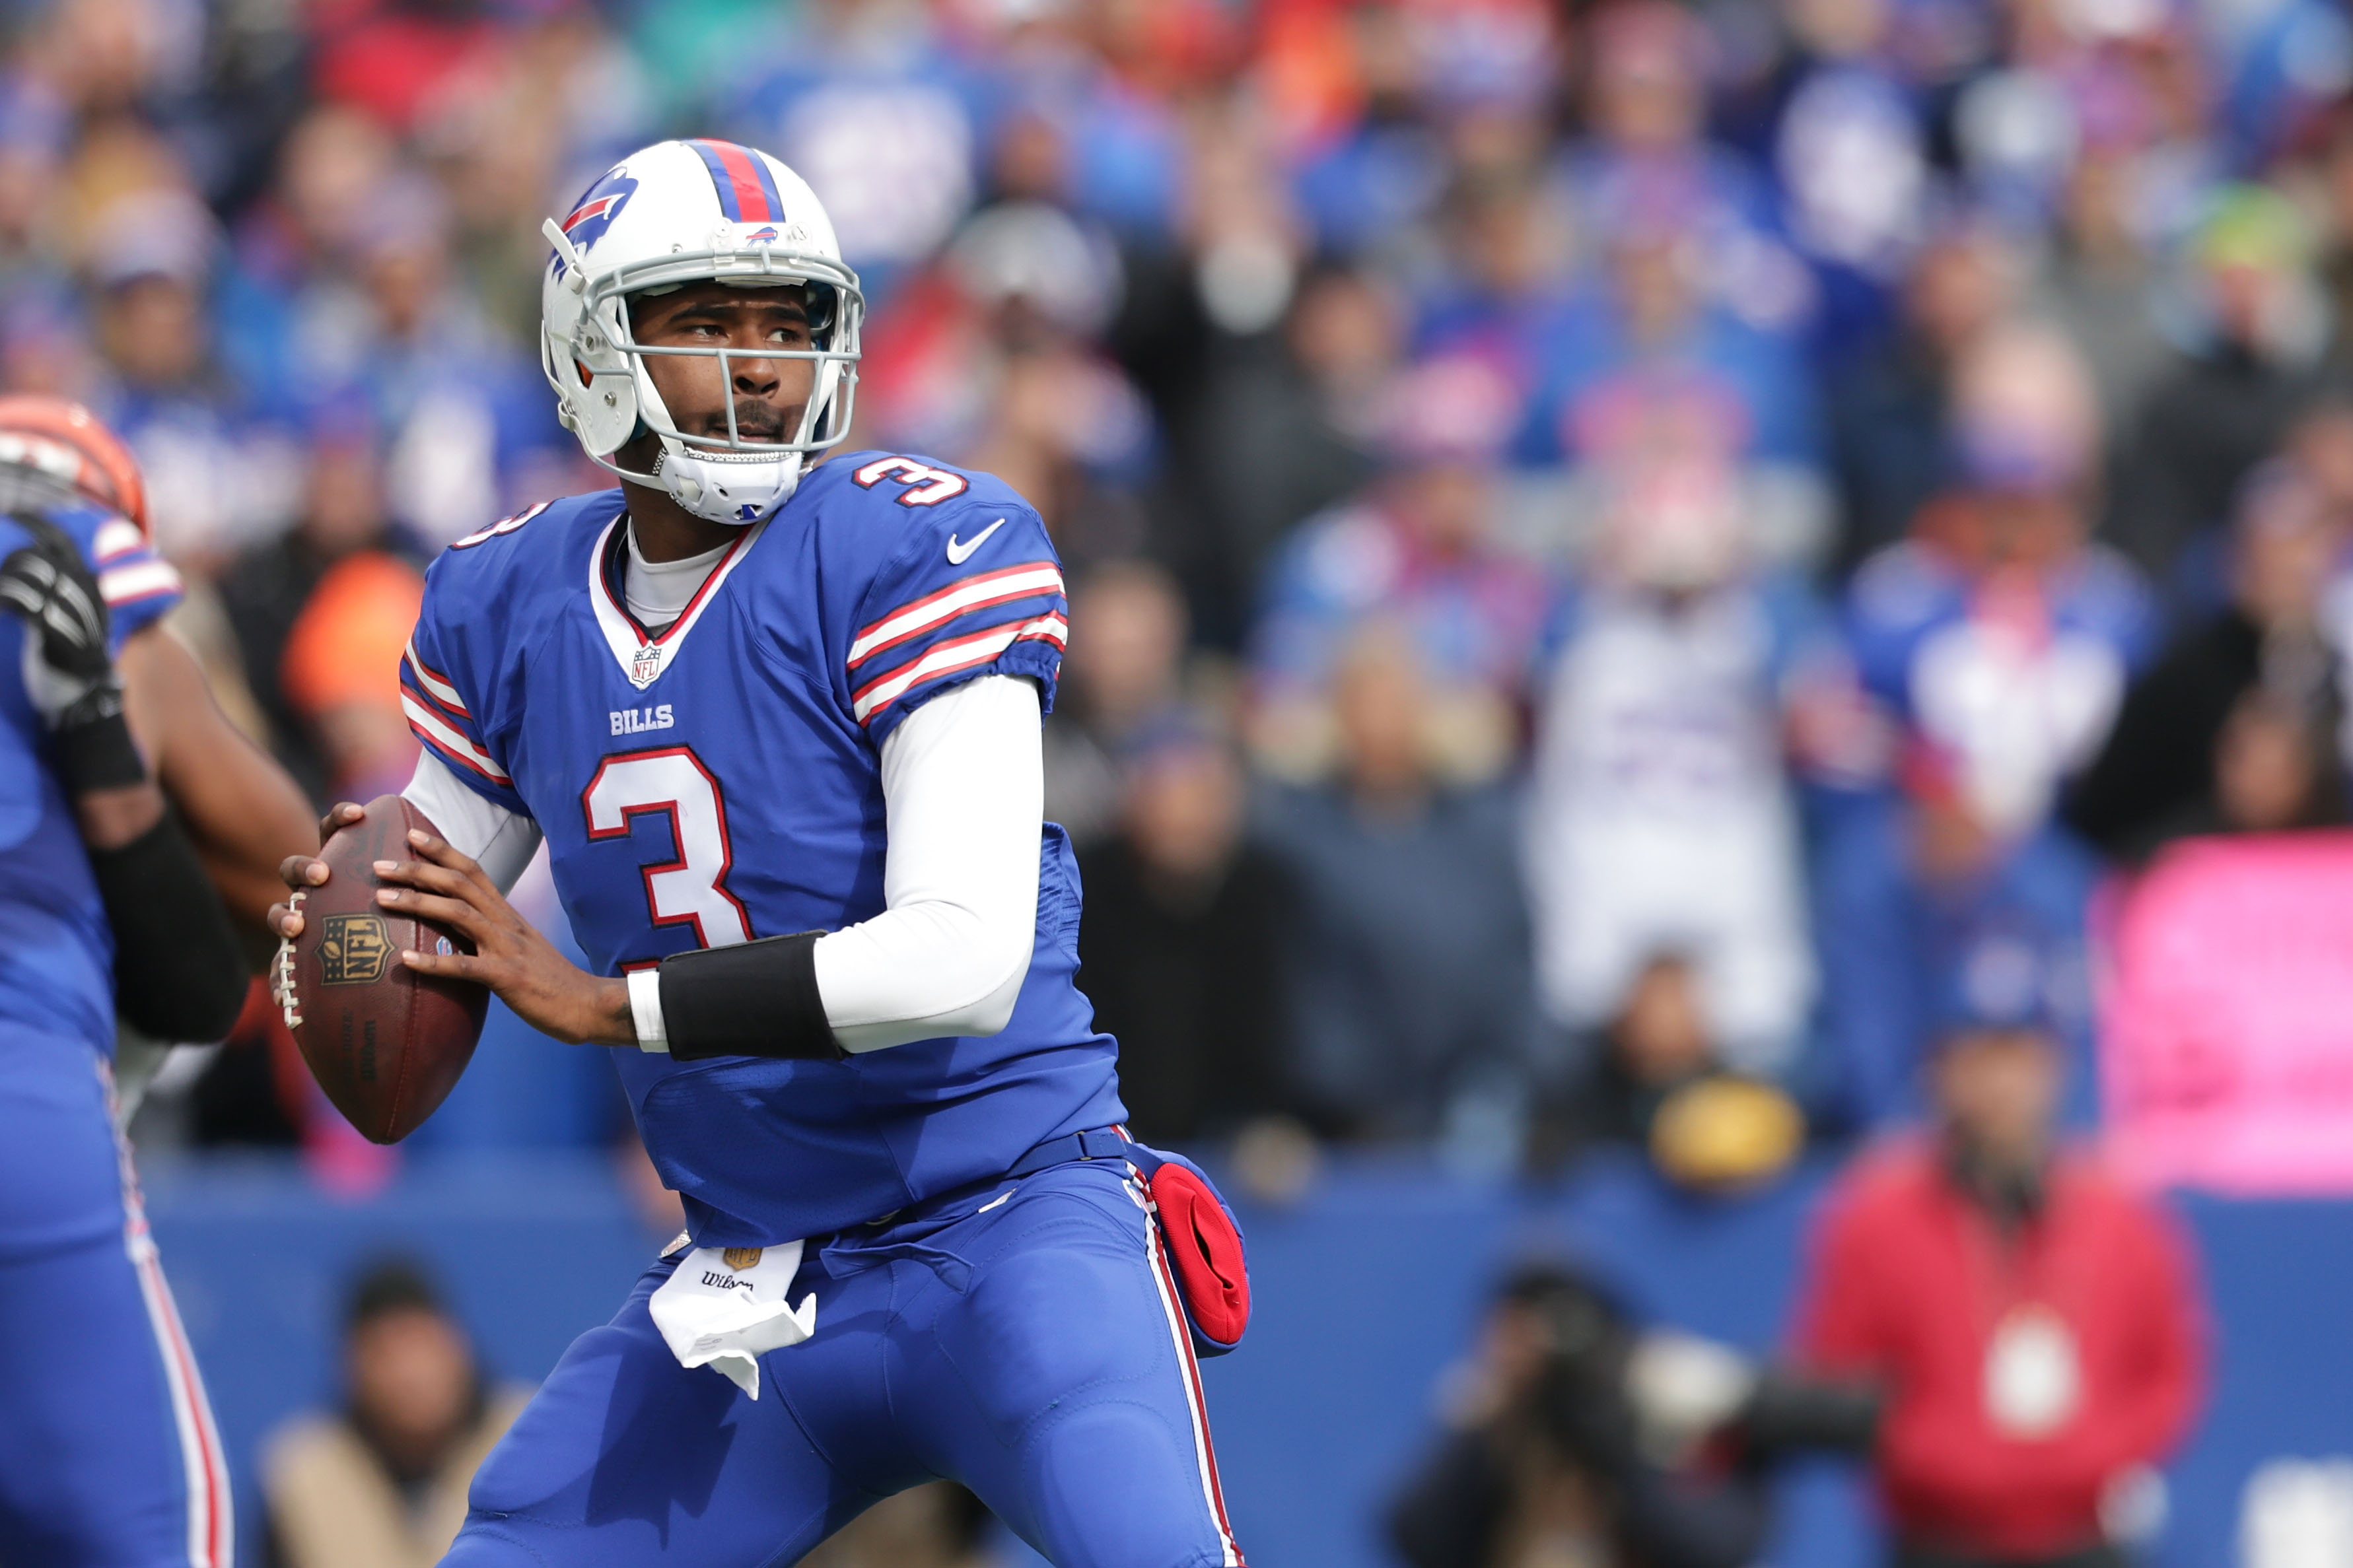 EJ Manuel will make his second start for the Bills if Tyrod Taylor is still injured. (Getty)